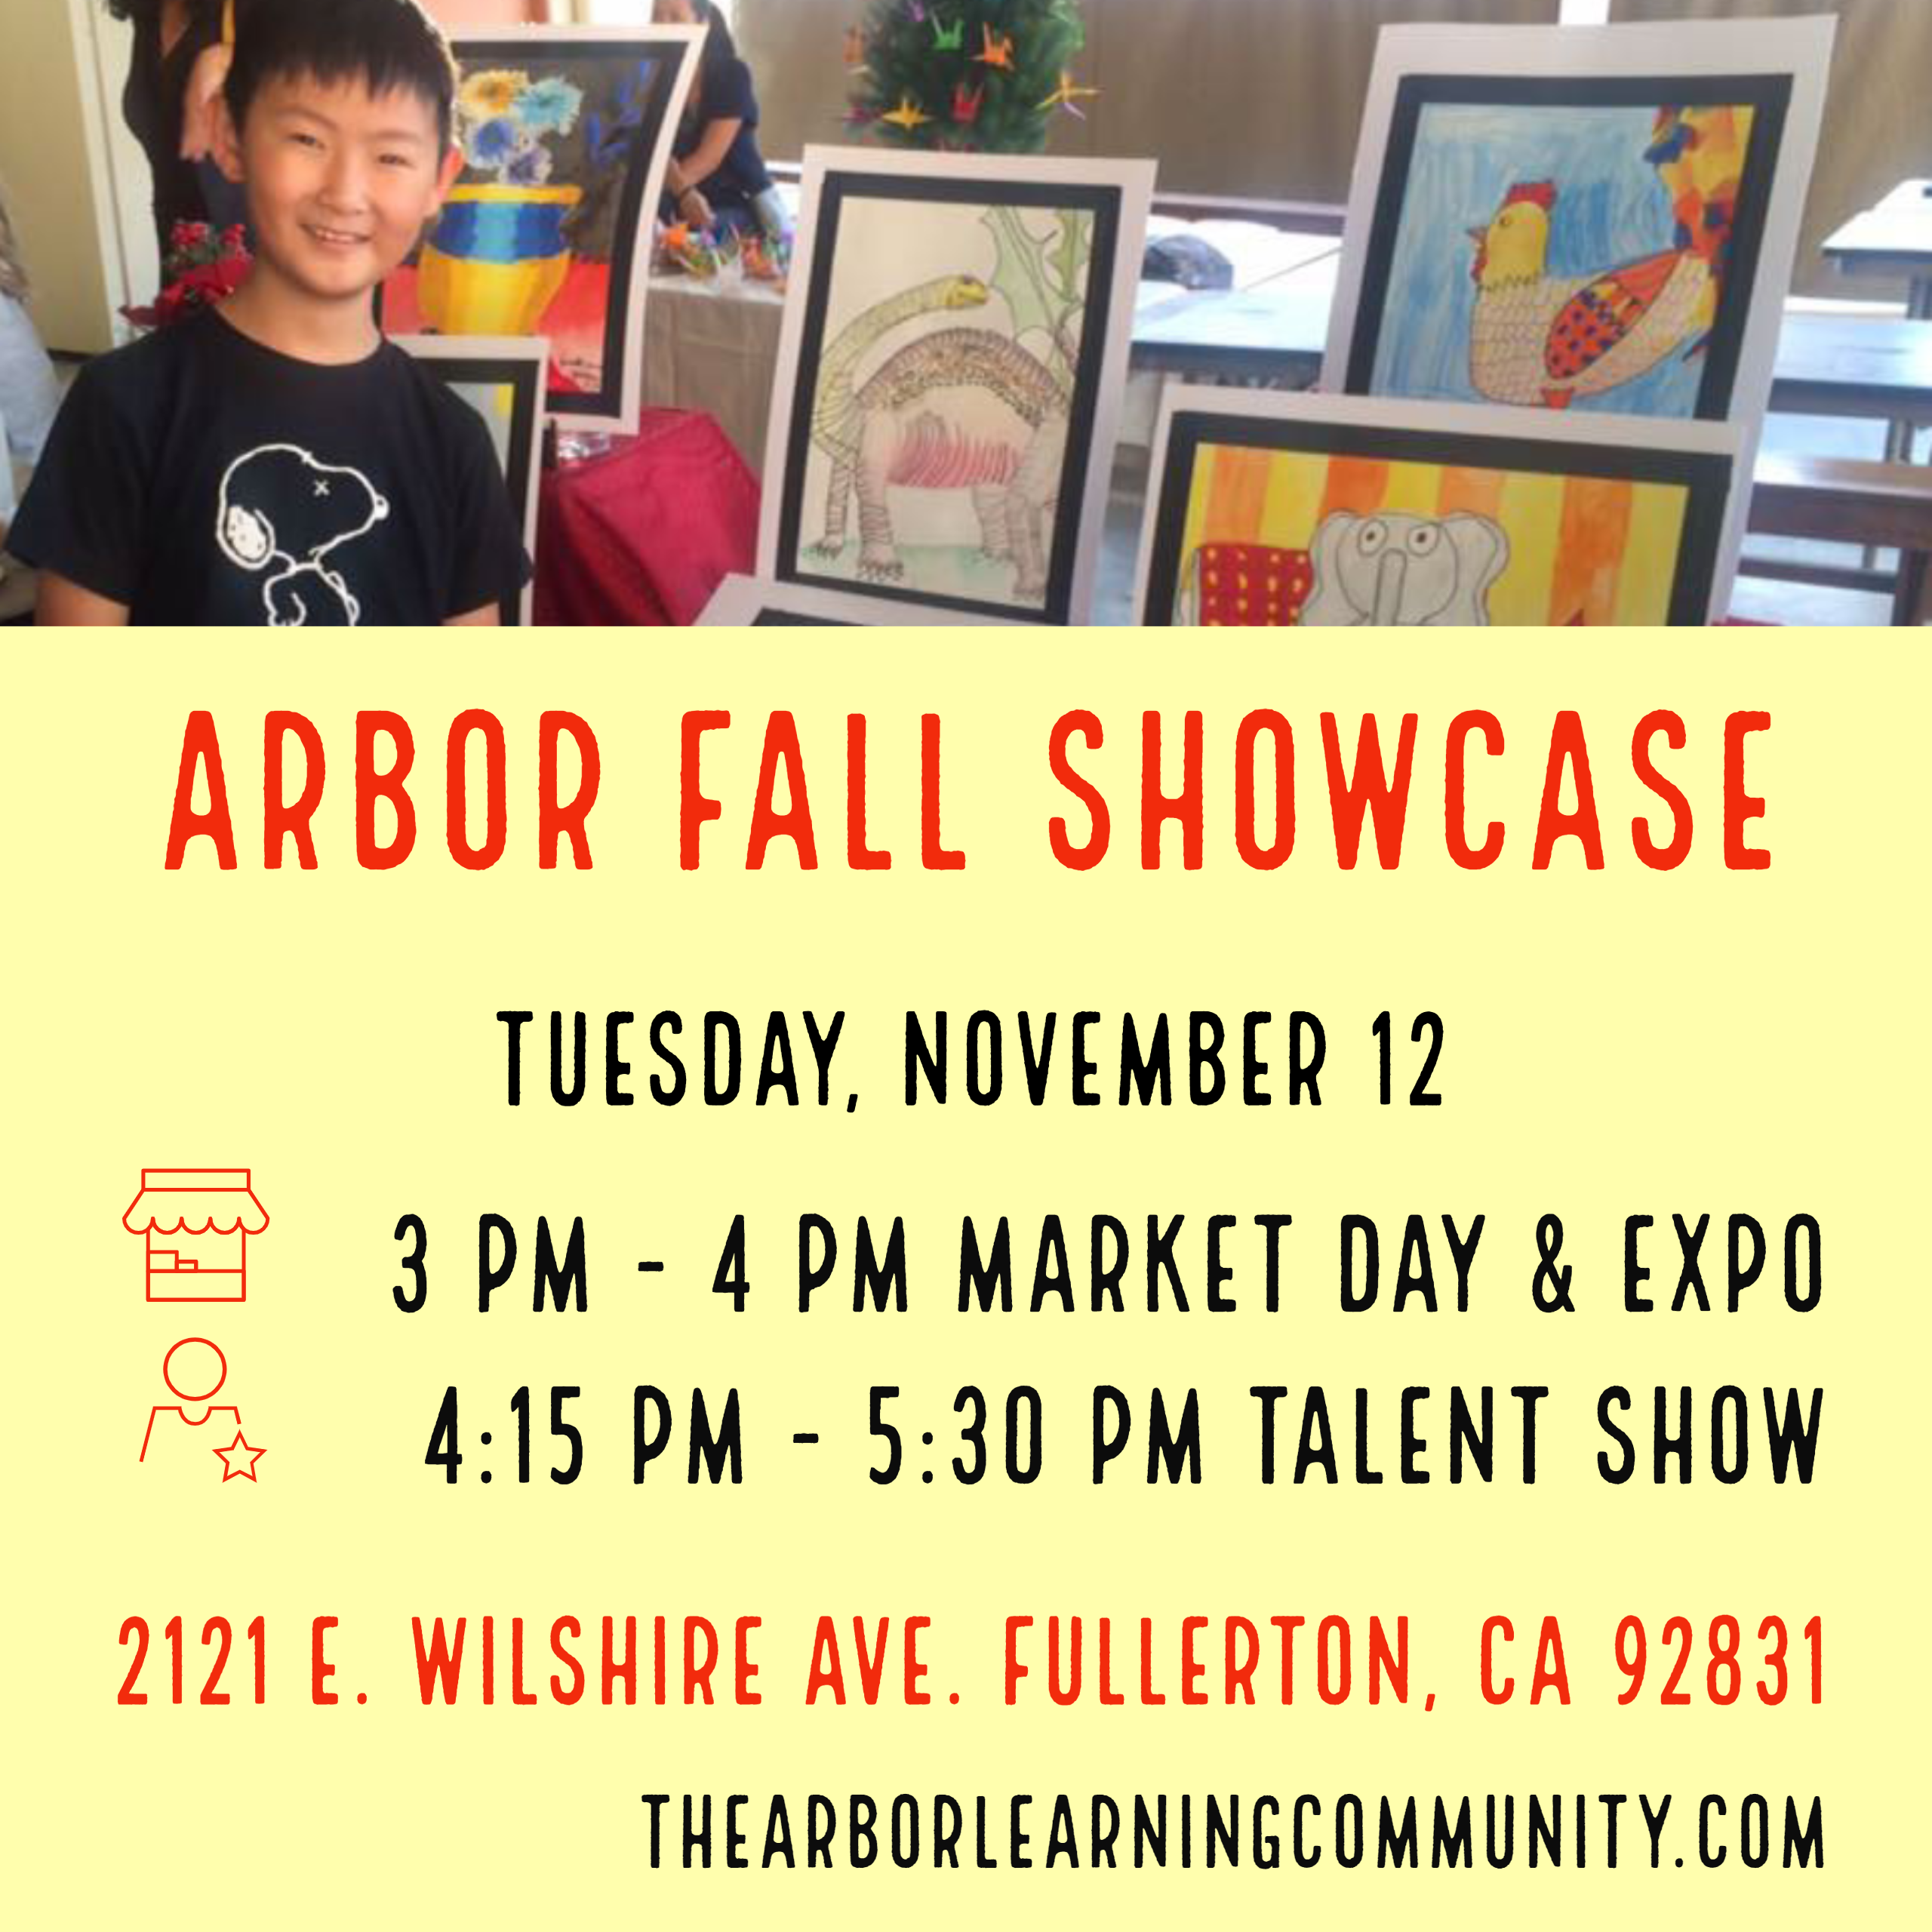 Arbor Fall Showcase, Tuesday, Nov 12 from 3pm to 5:30pm